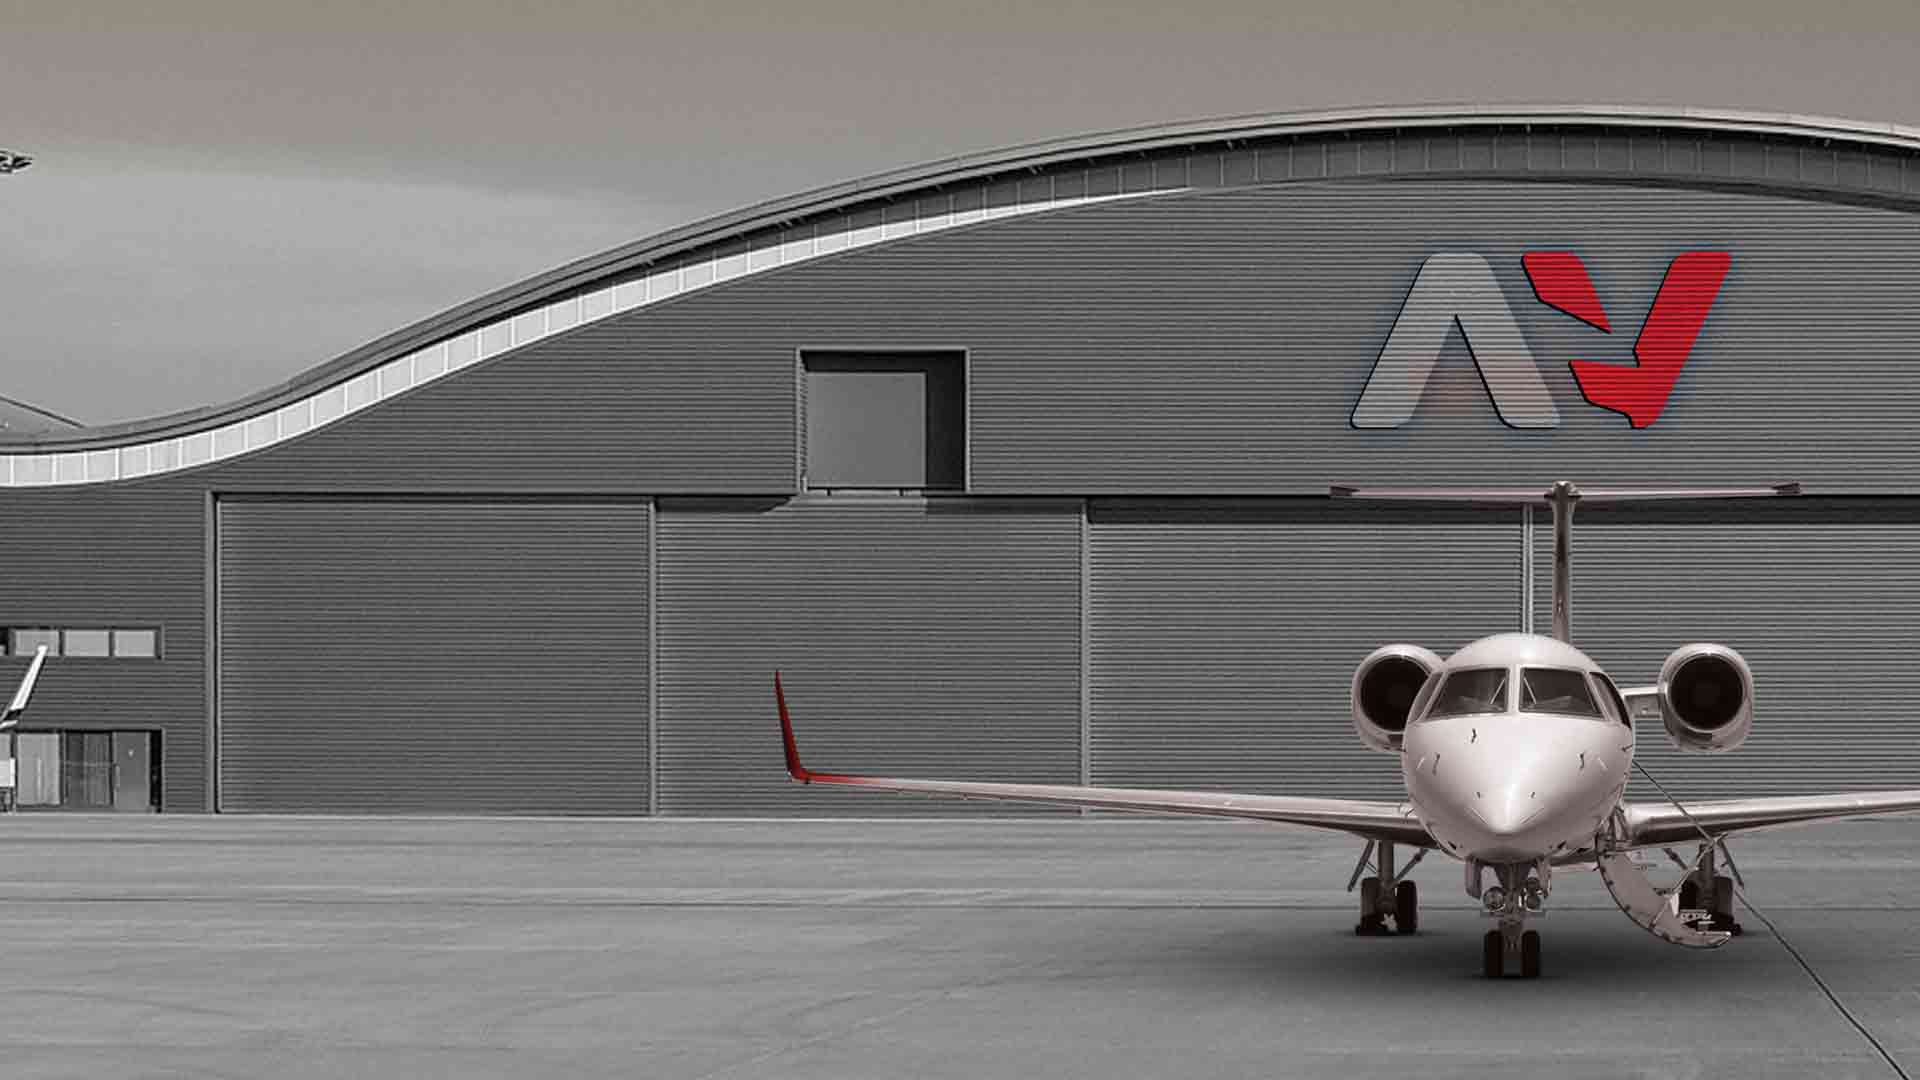 ADDING WINGS TO AN AVIATION BRAND